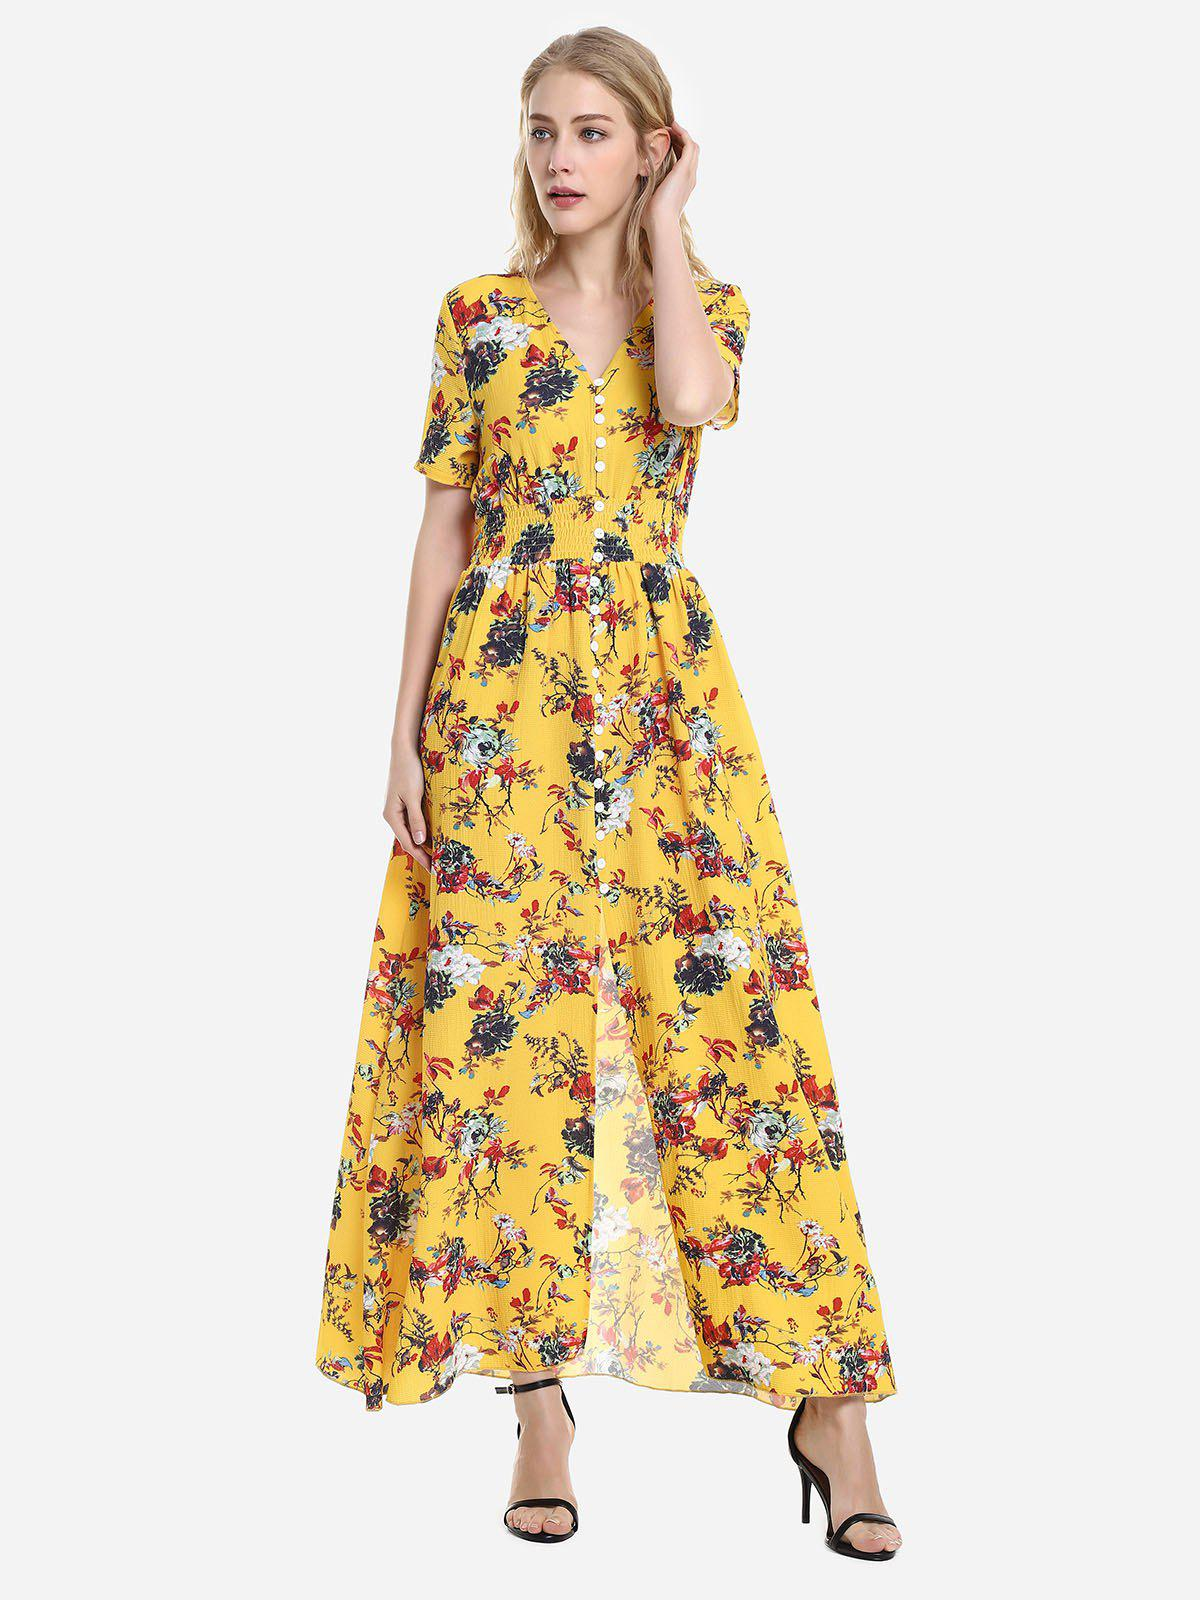 ZAN.STYLE Short Sleeve Floral Print V Neck Dress - YELLOW M